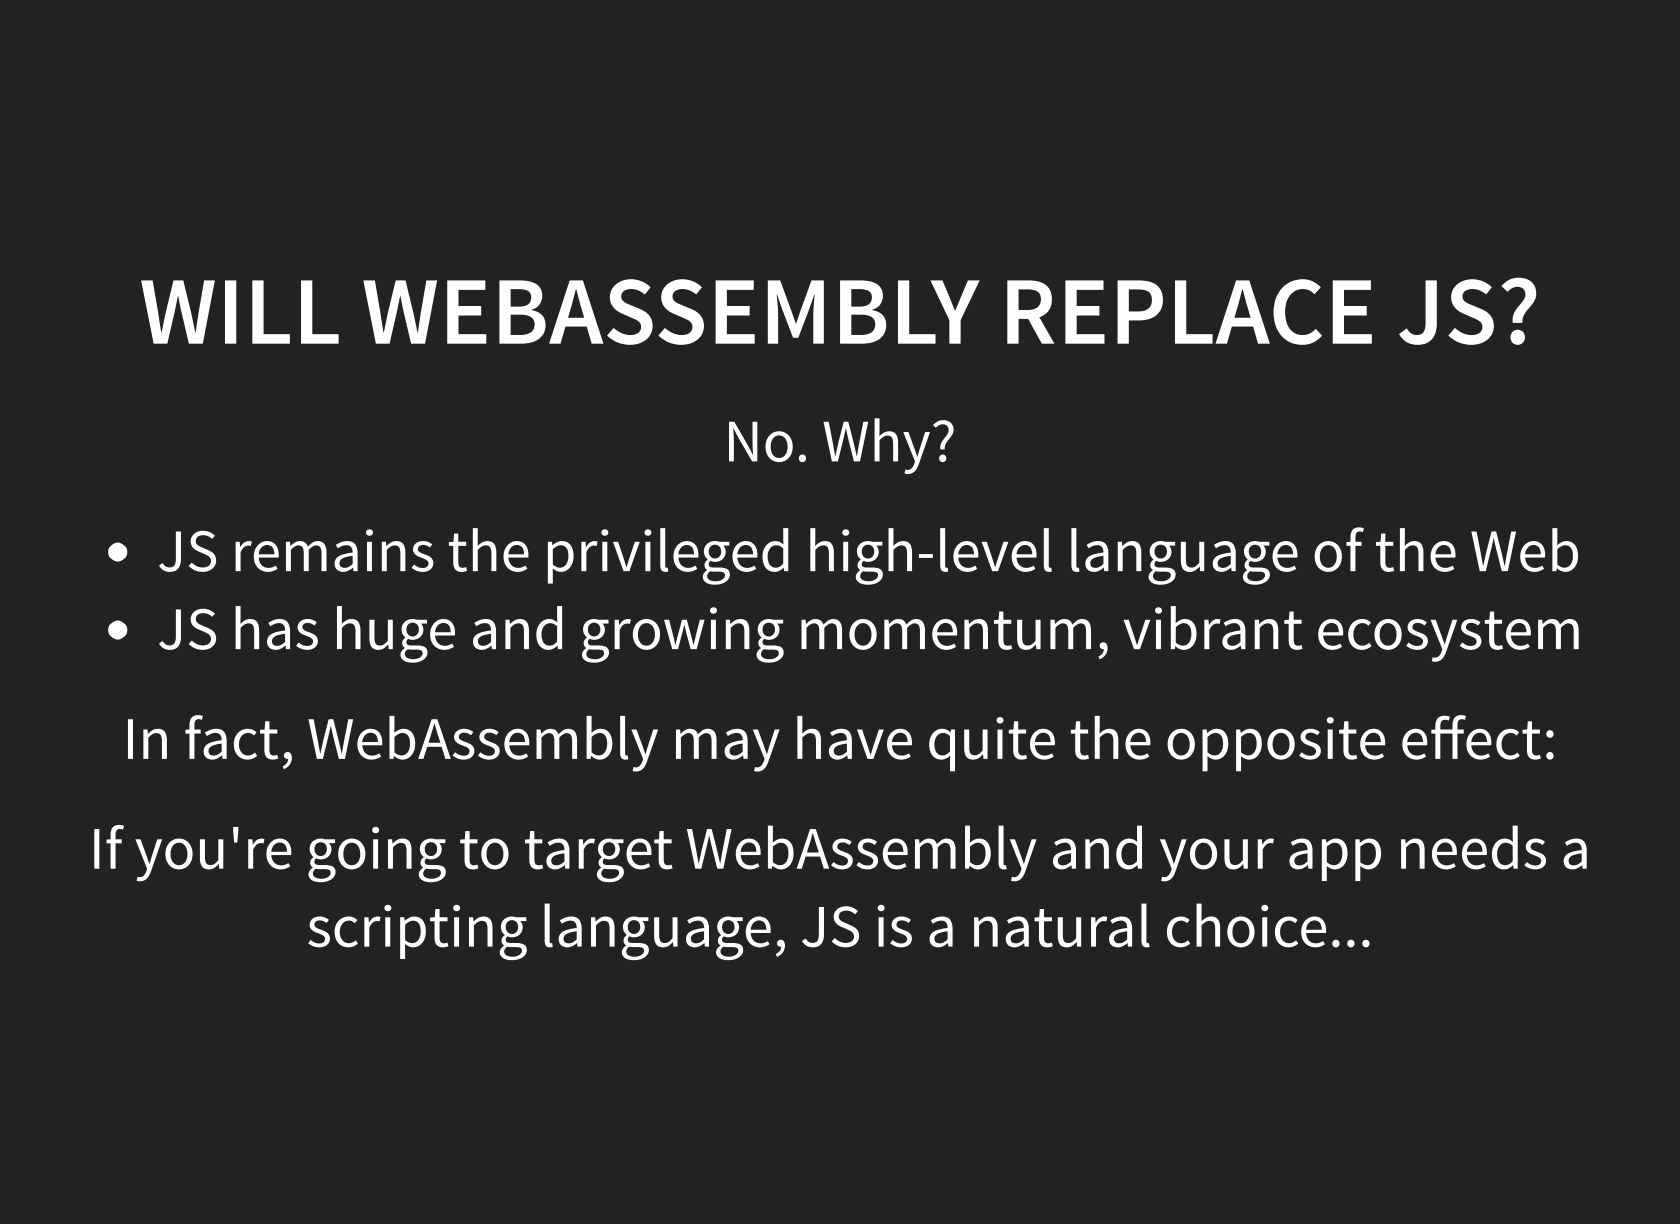 WebAssembly: A New Compilation Target for the Web